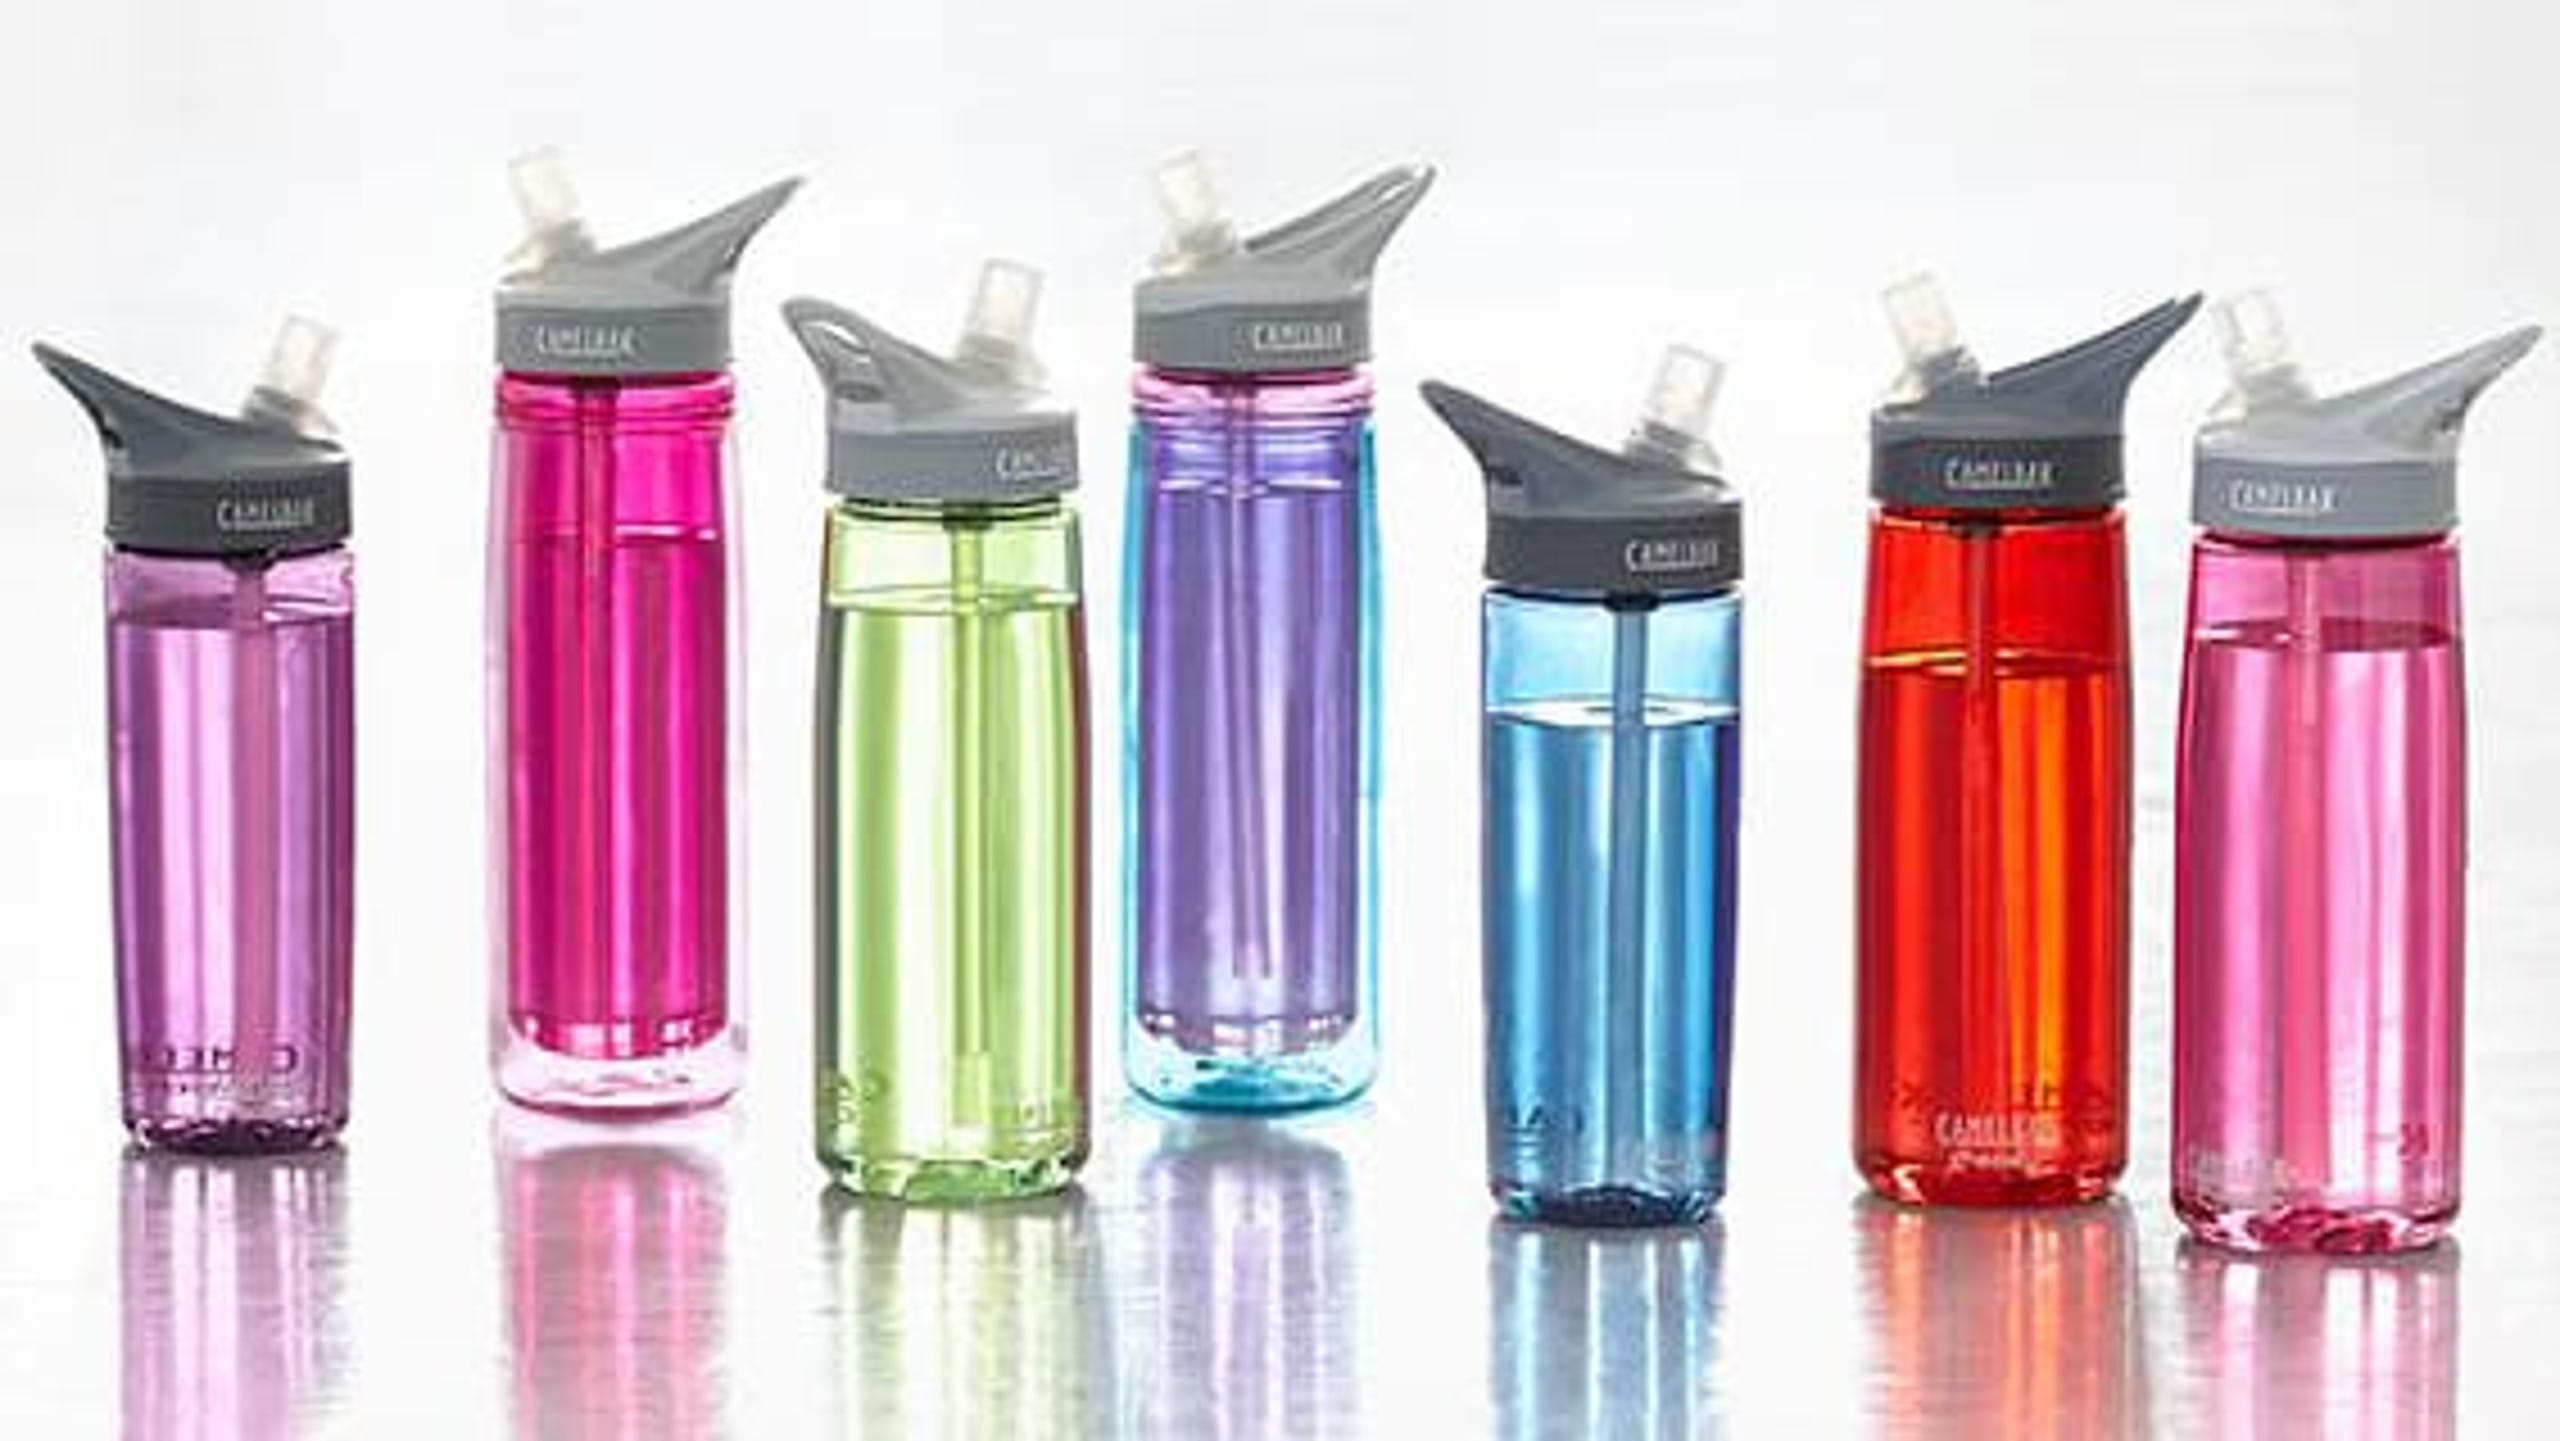 "Staying hydrated is not only the key to moisturized skin this winter, but also very important if you catch a cold. The CamelBak Eddy will help you drink more water because all you have to do is flip the mouthpiece, bite it, and sip, which is great for when you're sick and don't feel like moving a muscle. It's one of&nbsp;<a href=""https://www.reviewed.com/home-outdoors/best-right-now/the-best-water-bottles?utm_source=usat&amp;utm_medium=referral&amp;utm_campaign=collab"" target=""_blank"">the best water bottles we tested</a>&nbsp;because it also holds a good amount of water and is a great price to boot. (<strong><a href=""https://www.amazon.com/CamelBak-Water-Bottle-Dragon-75-Liter/dp/B00NTYHBUG/ref=as_li_ss_tl?ie=UTF8&amp;linkCode=ll1&amp;tag=usatgallery-20&amp;linkId=9d672f657ca93f2e9877221565d459d2&amp;language=en_US"" target=""_blank"">$14.99 on Amazon</a></strong>)"